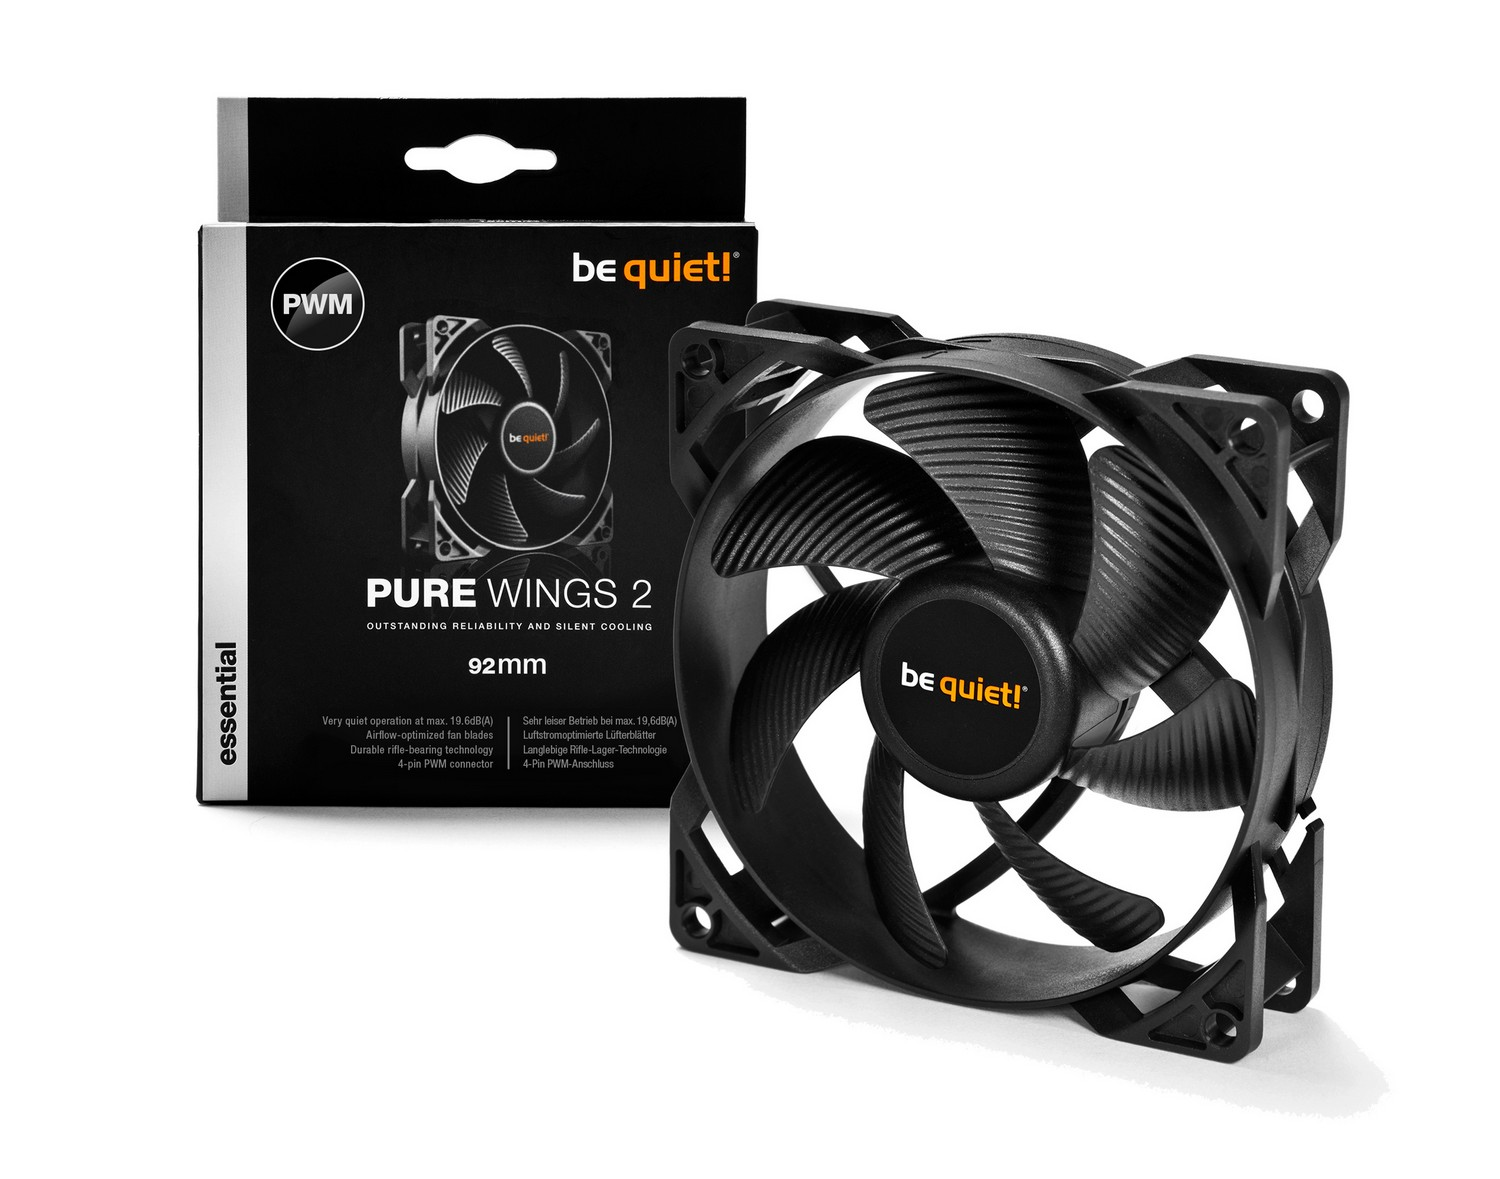 Pure Wings 2 PWM 92mm